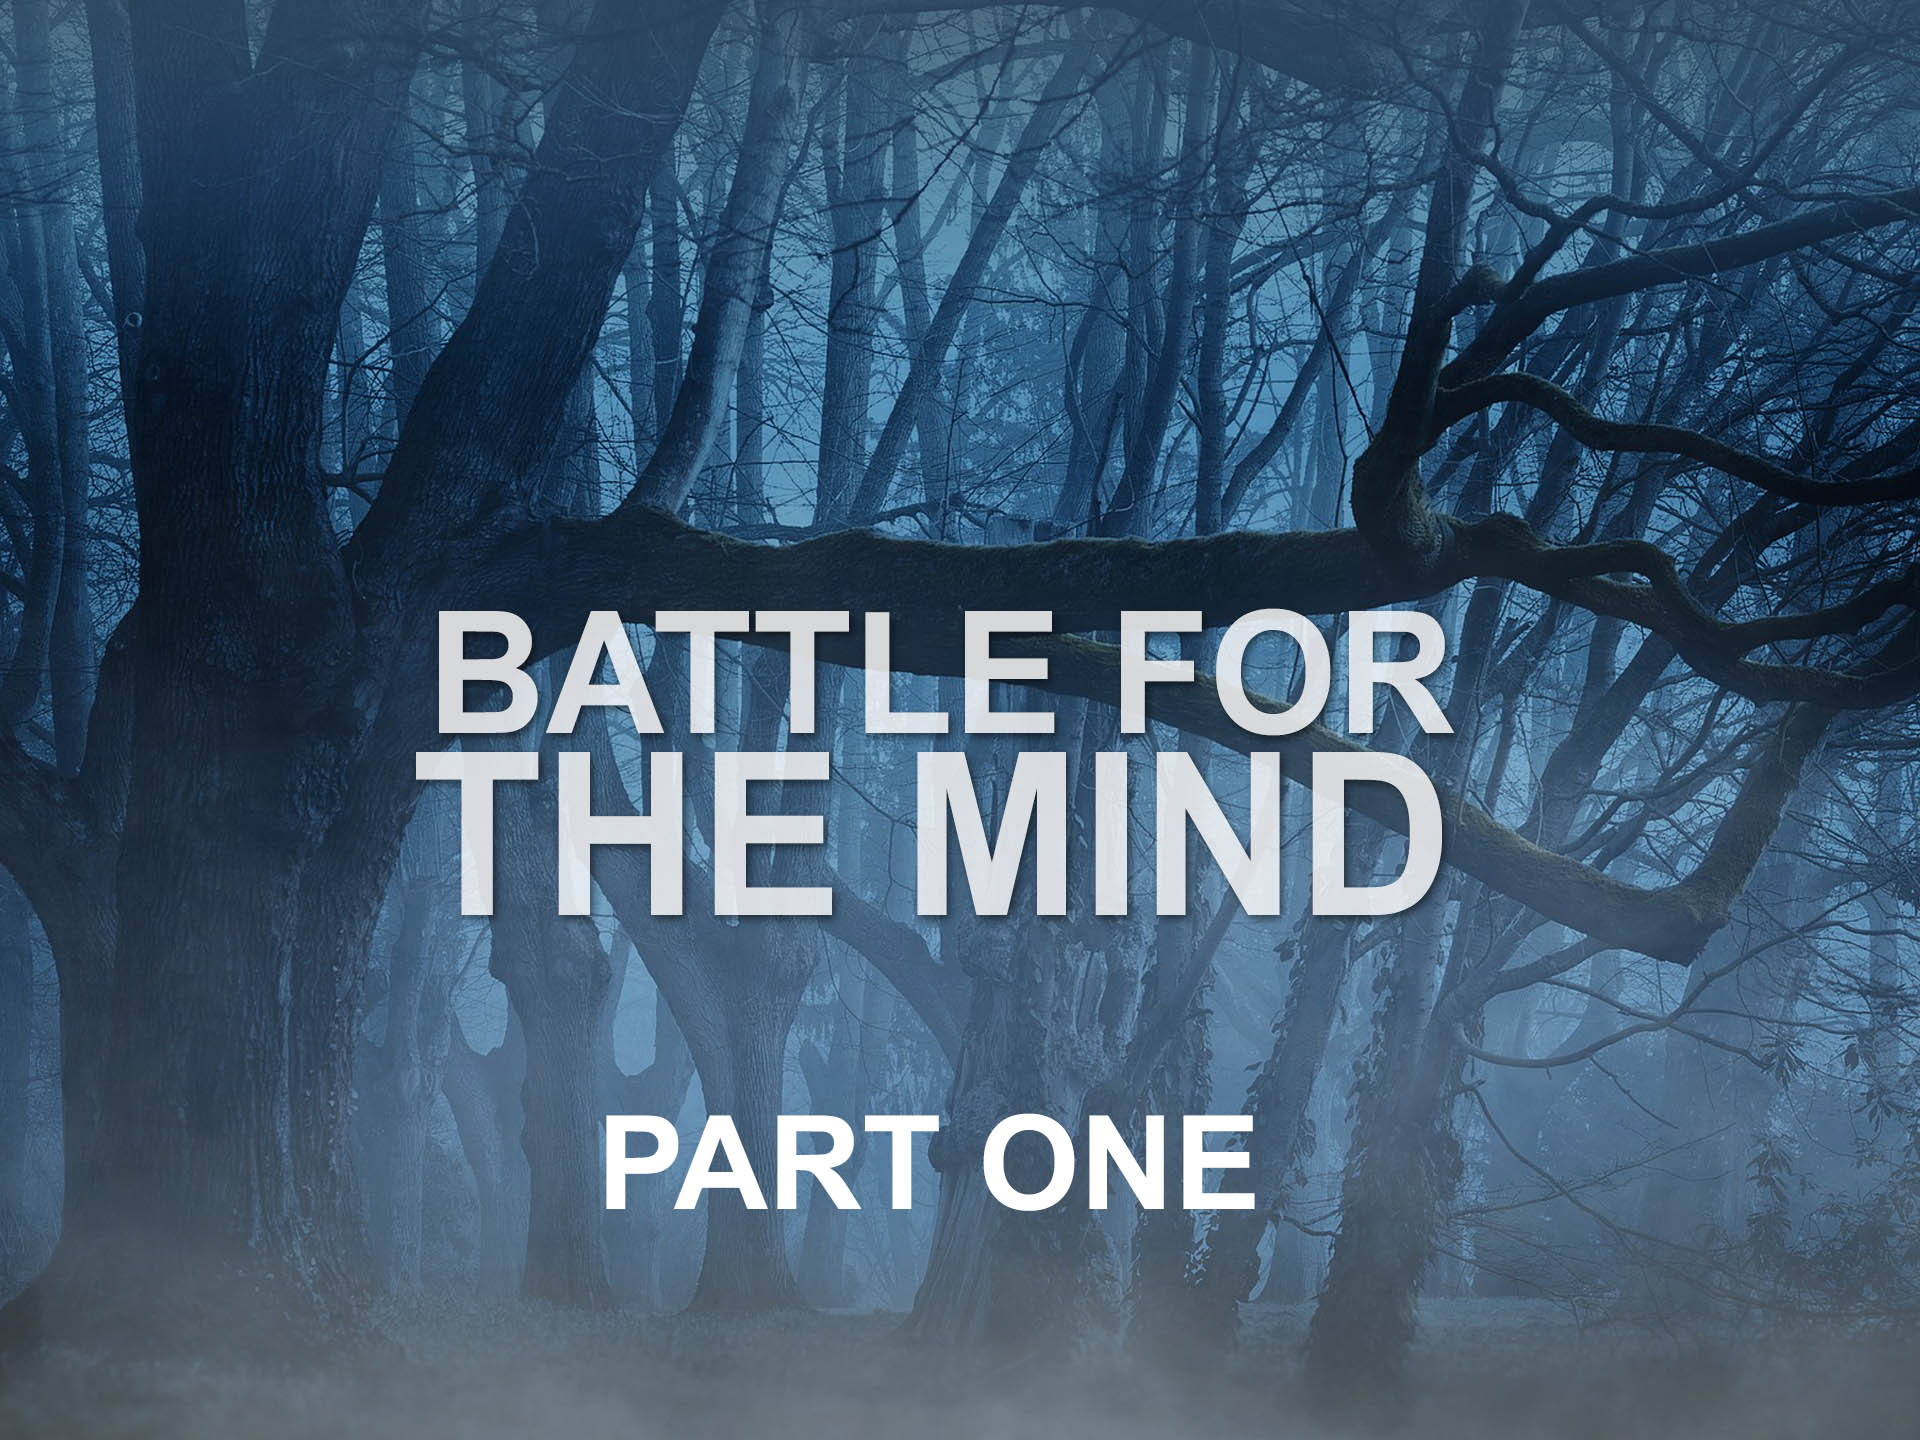 Battle for the Mind, Part One